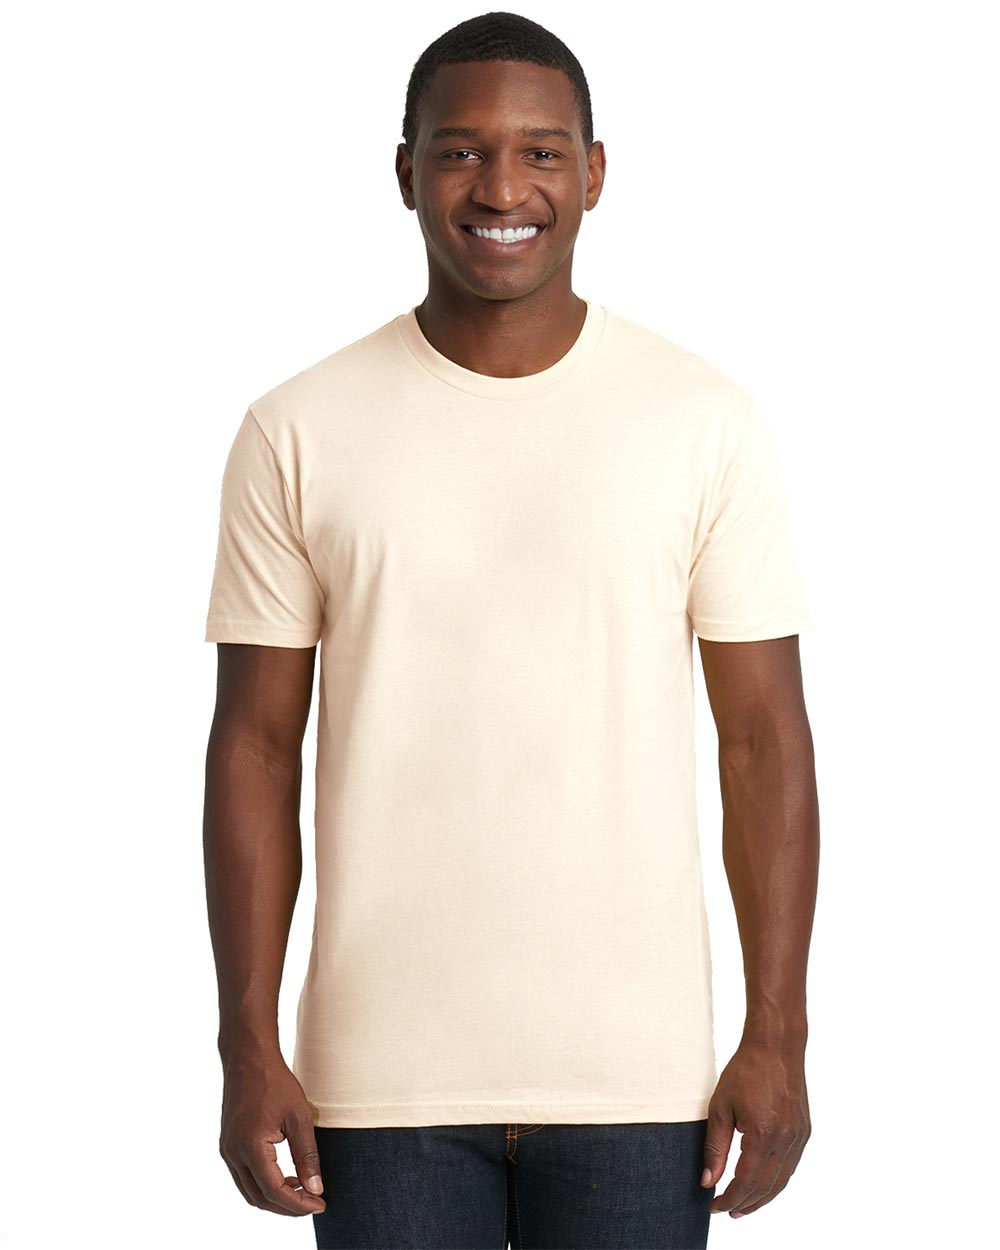 Next Level 3600 - Unisex Cotton T-Shirt